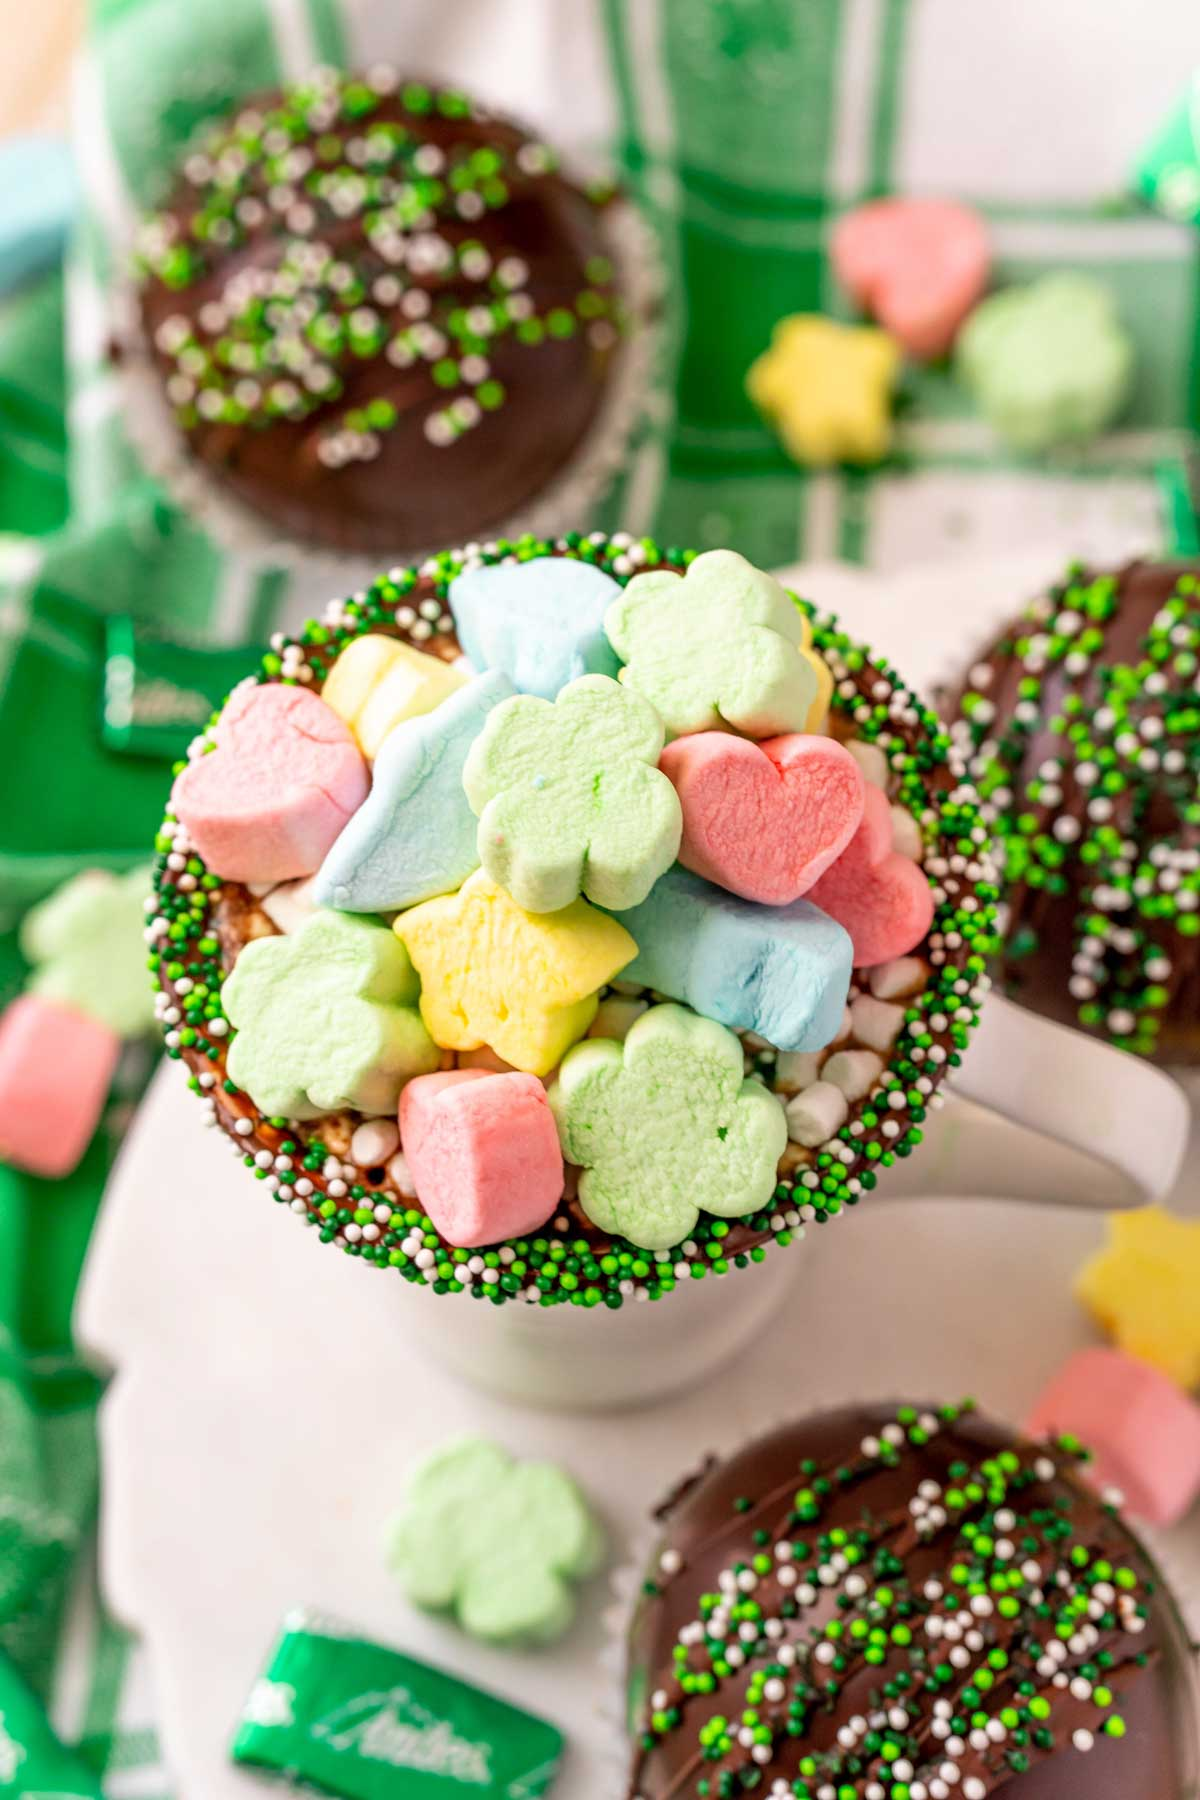 Mug filled with hot chocolate and Lucky Charms marshmallows